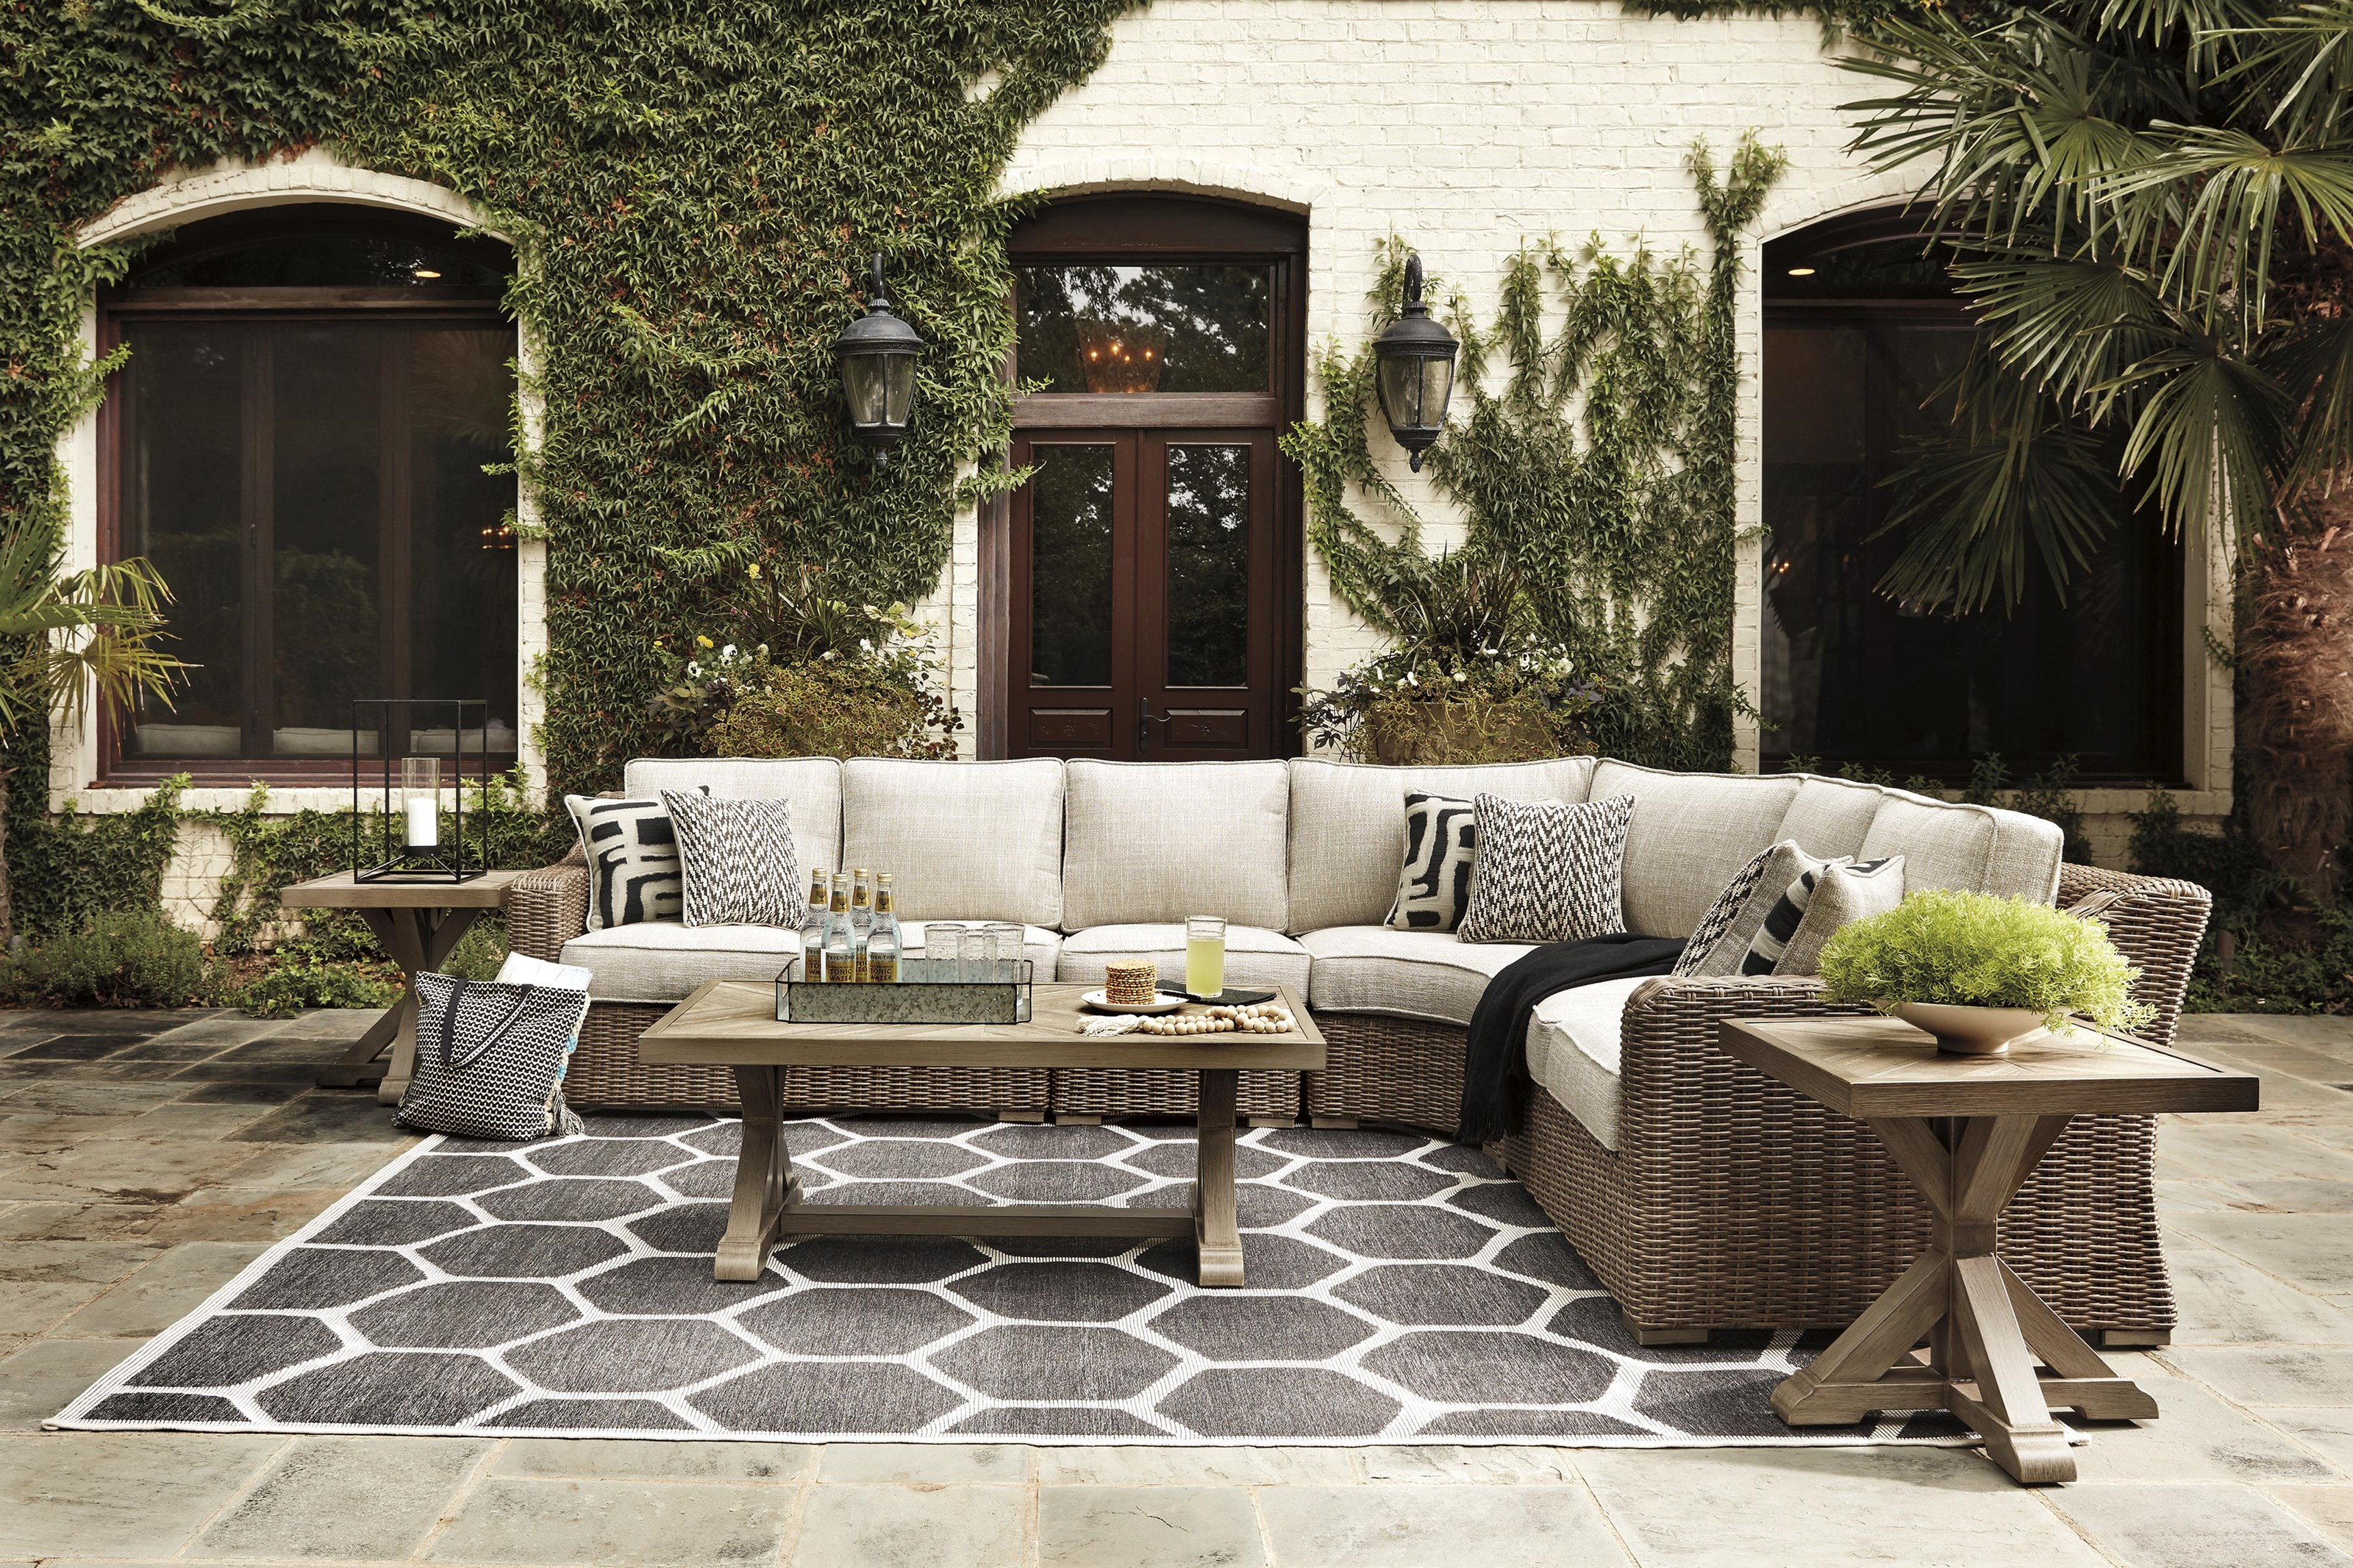 7 PC Outdoor Conversation Set